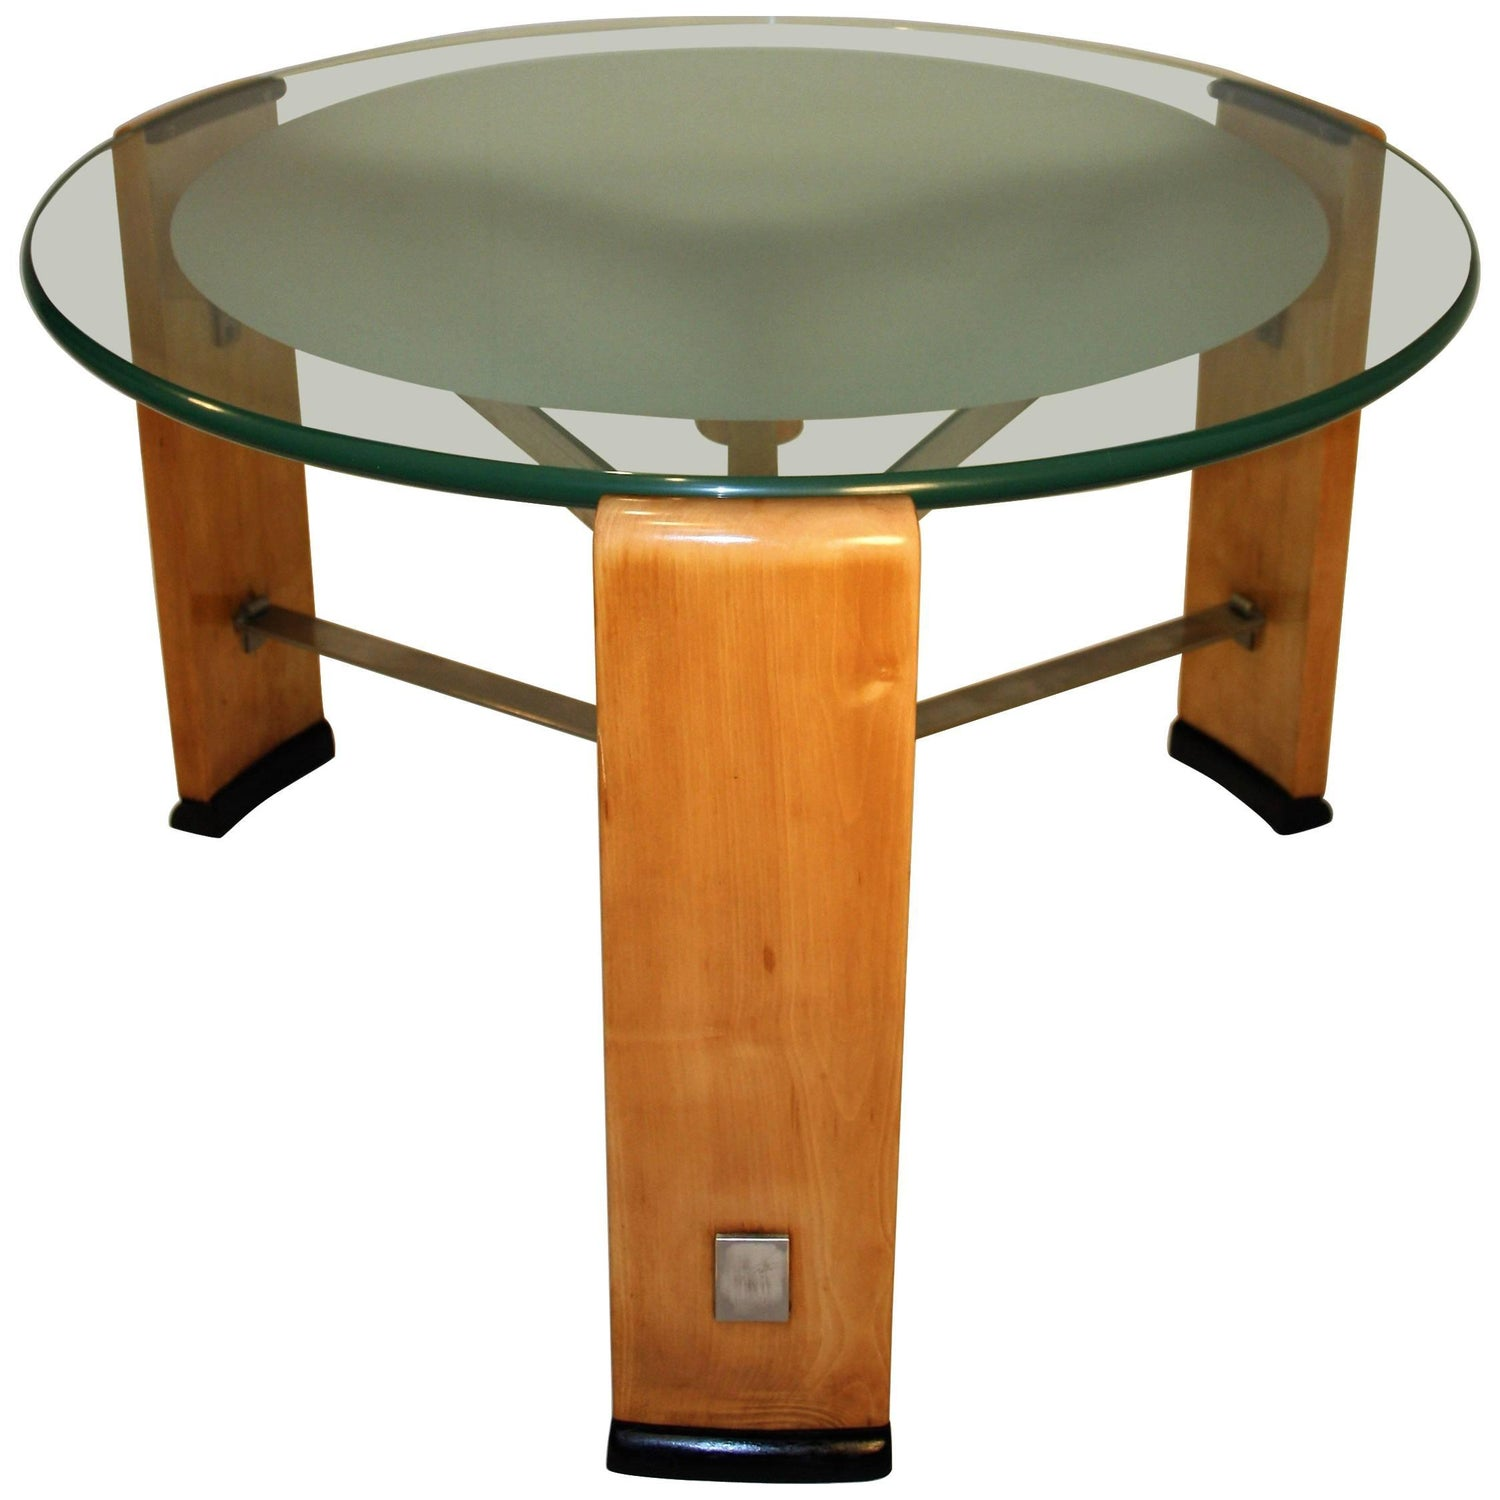 Art Deco Coffee and Cocktail Tables 472 For Sale at 1stdibs